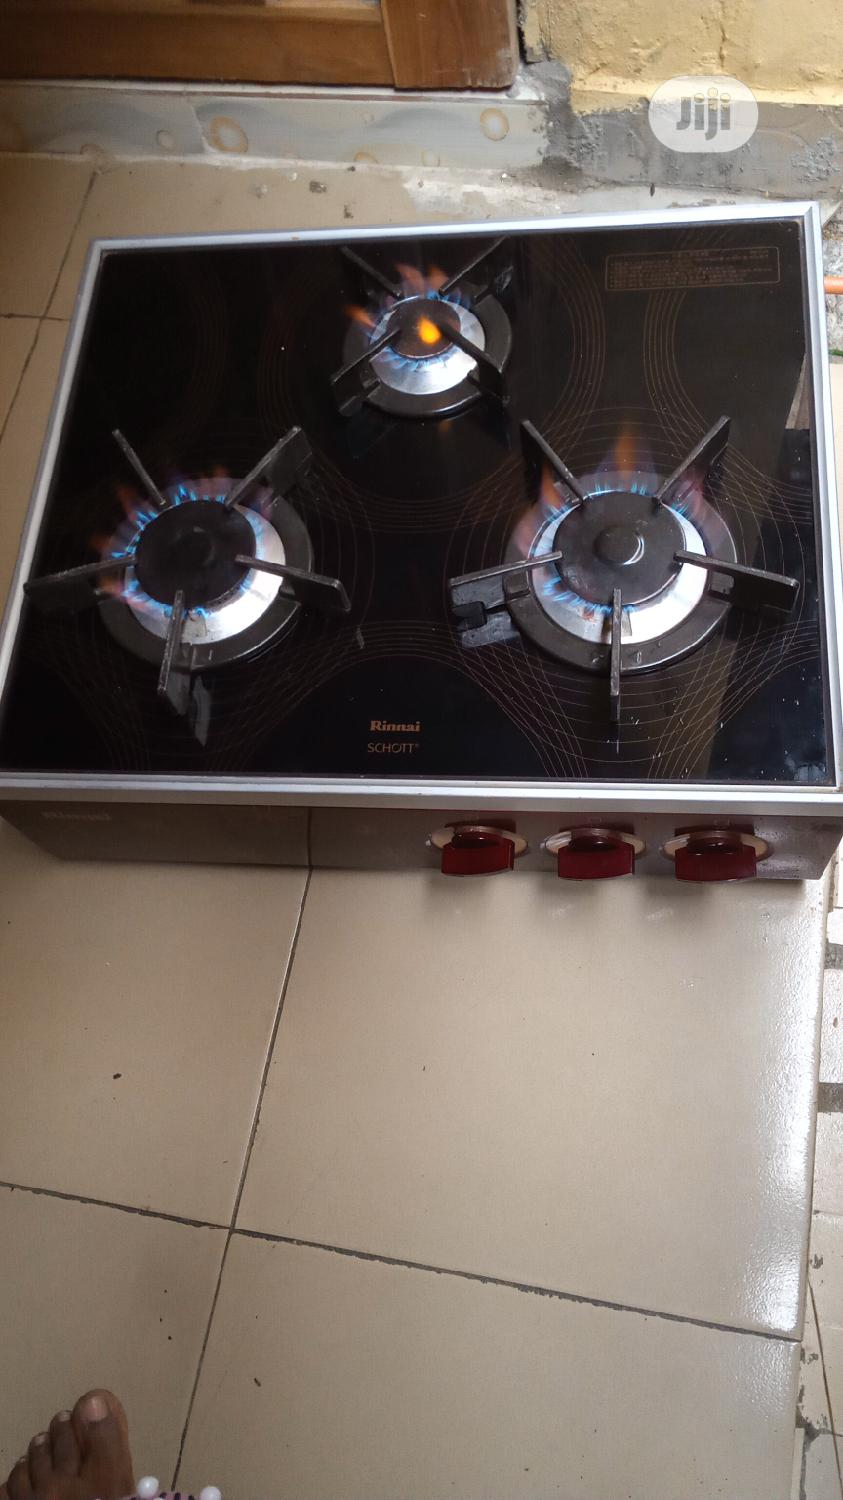 Strong Rinnai 3burner Gas Cooker With Glass Top From Korea